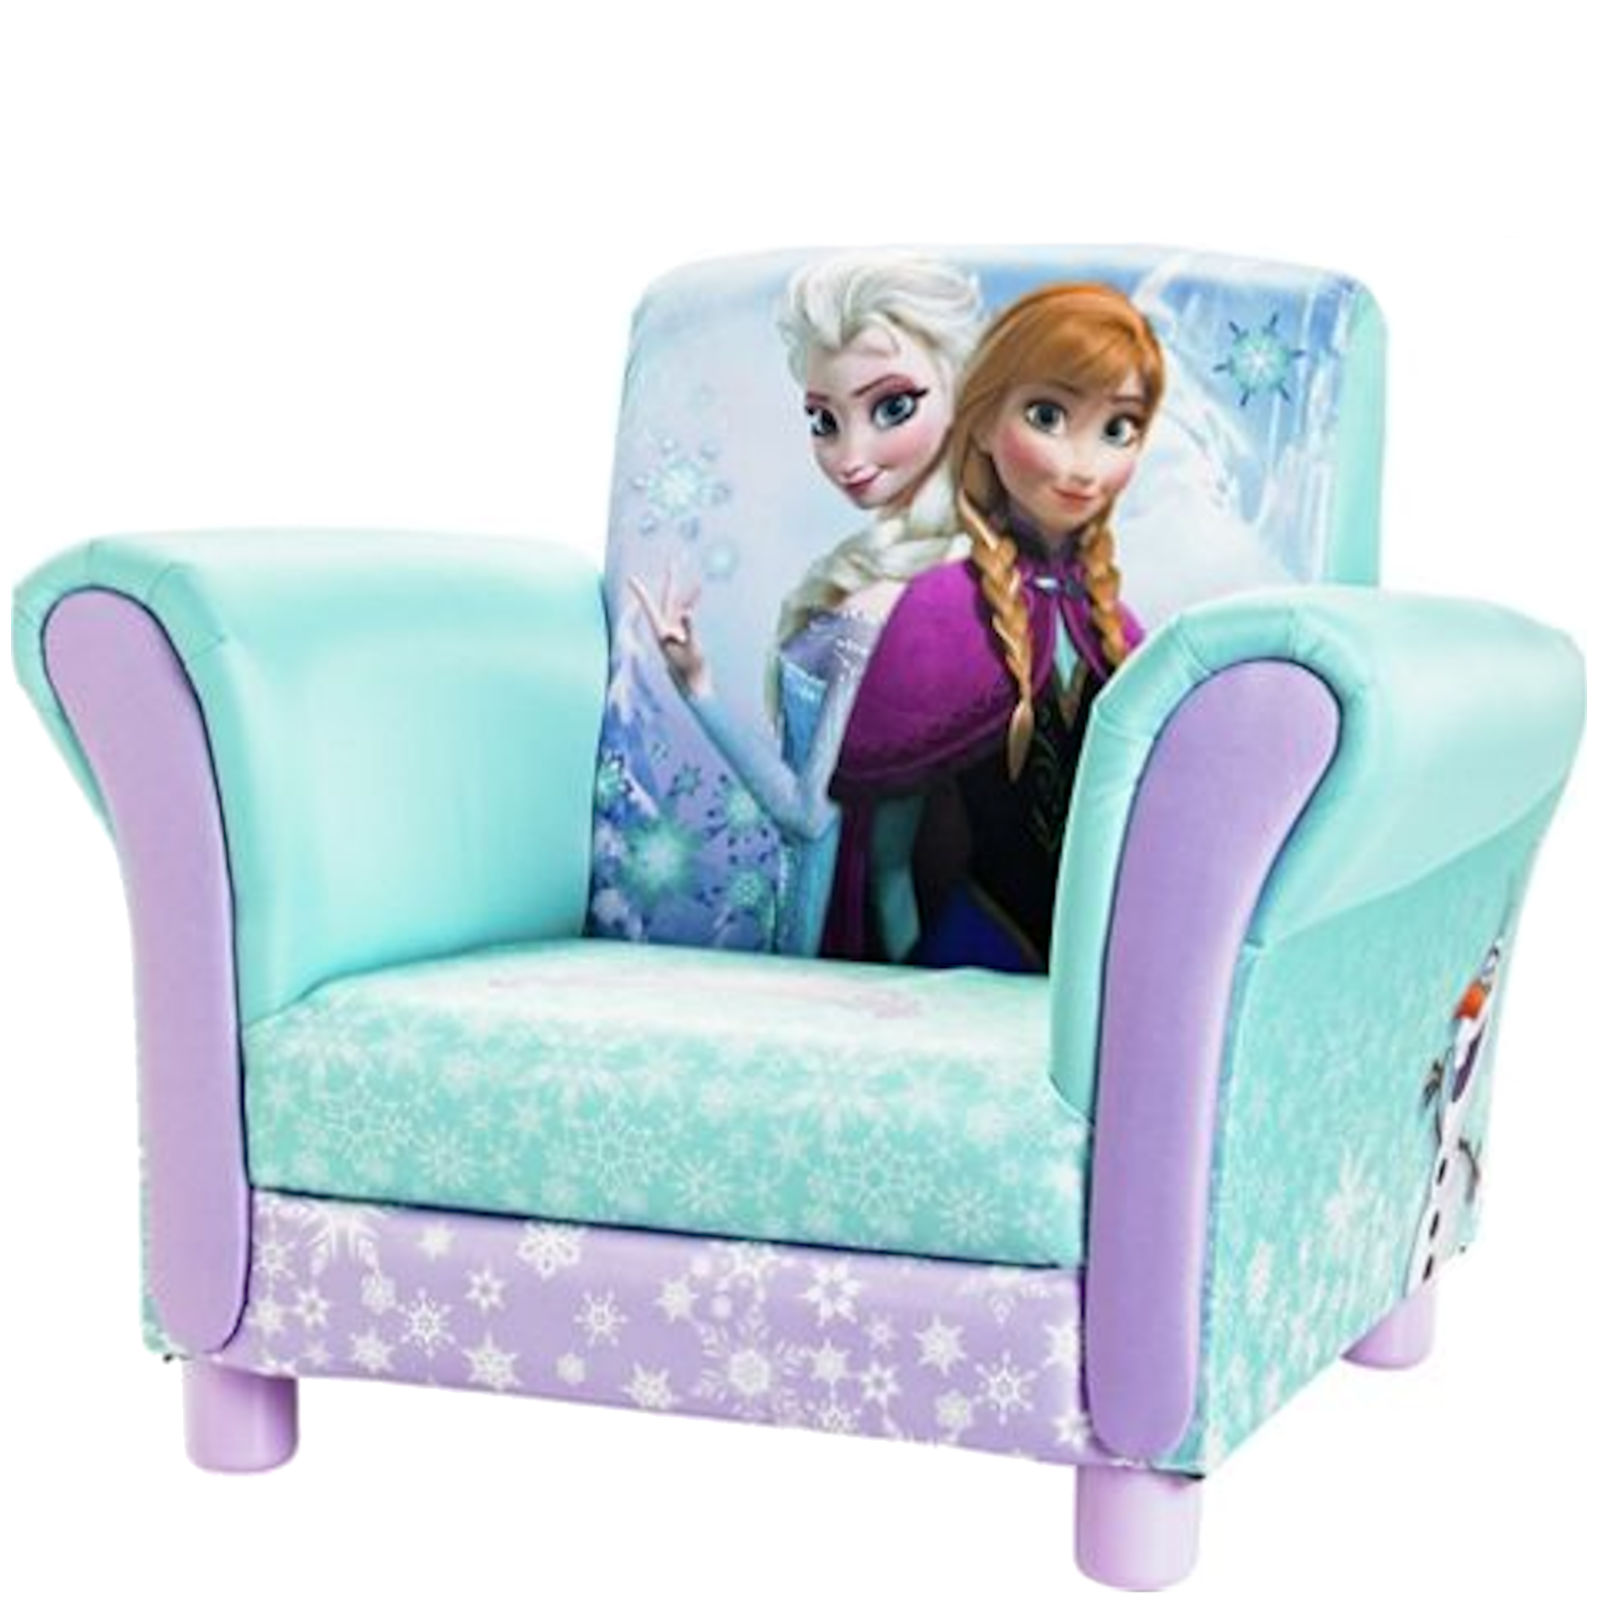 Delta Children Upholstered Chair Disney Frozen